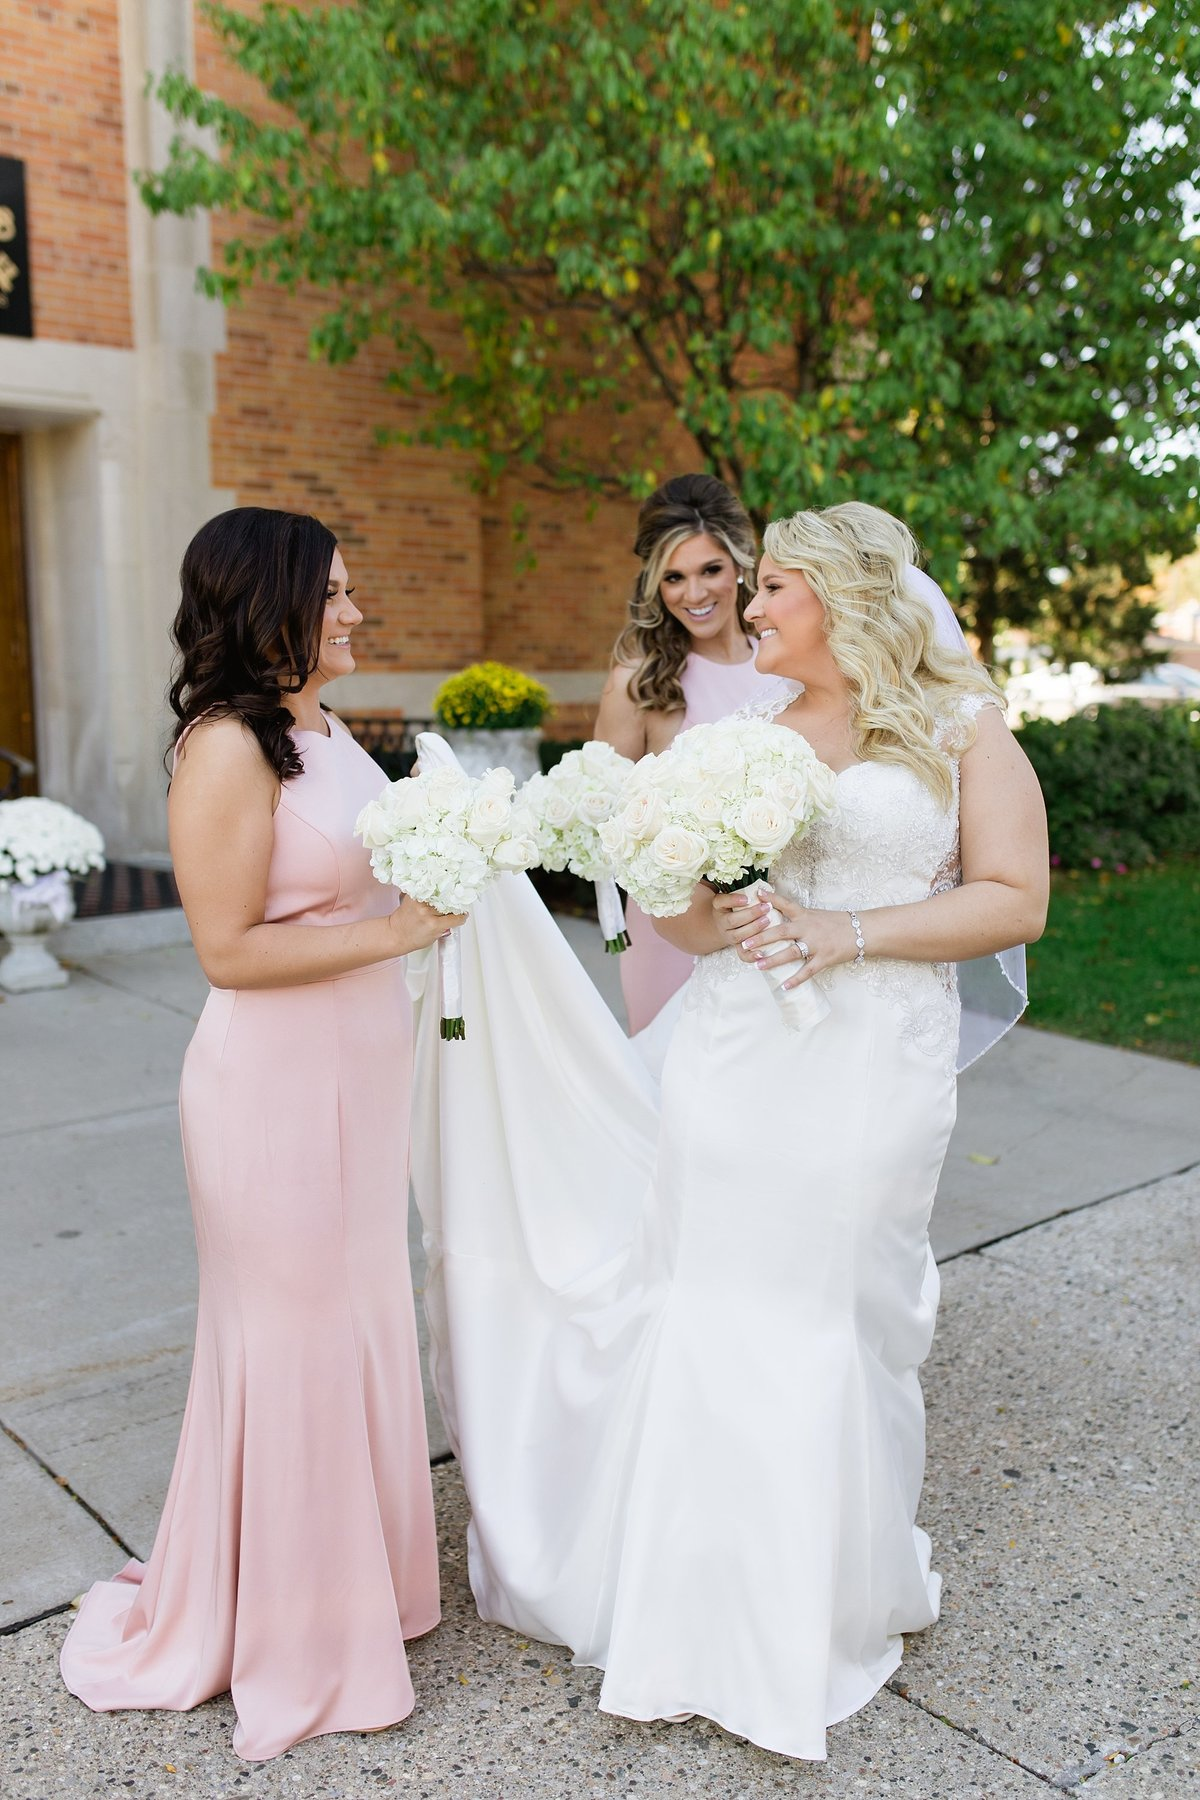 Carly-Johnny-Elegant-Fall-Michigan-Wedding-Breanne-Rochelle-Photography44